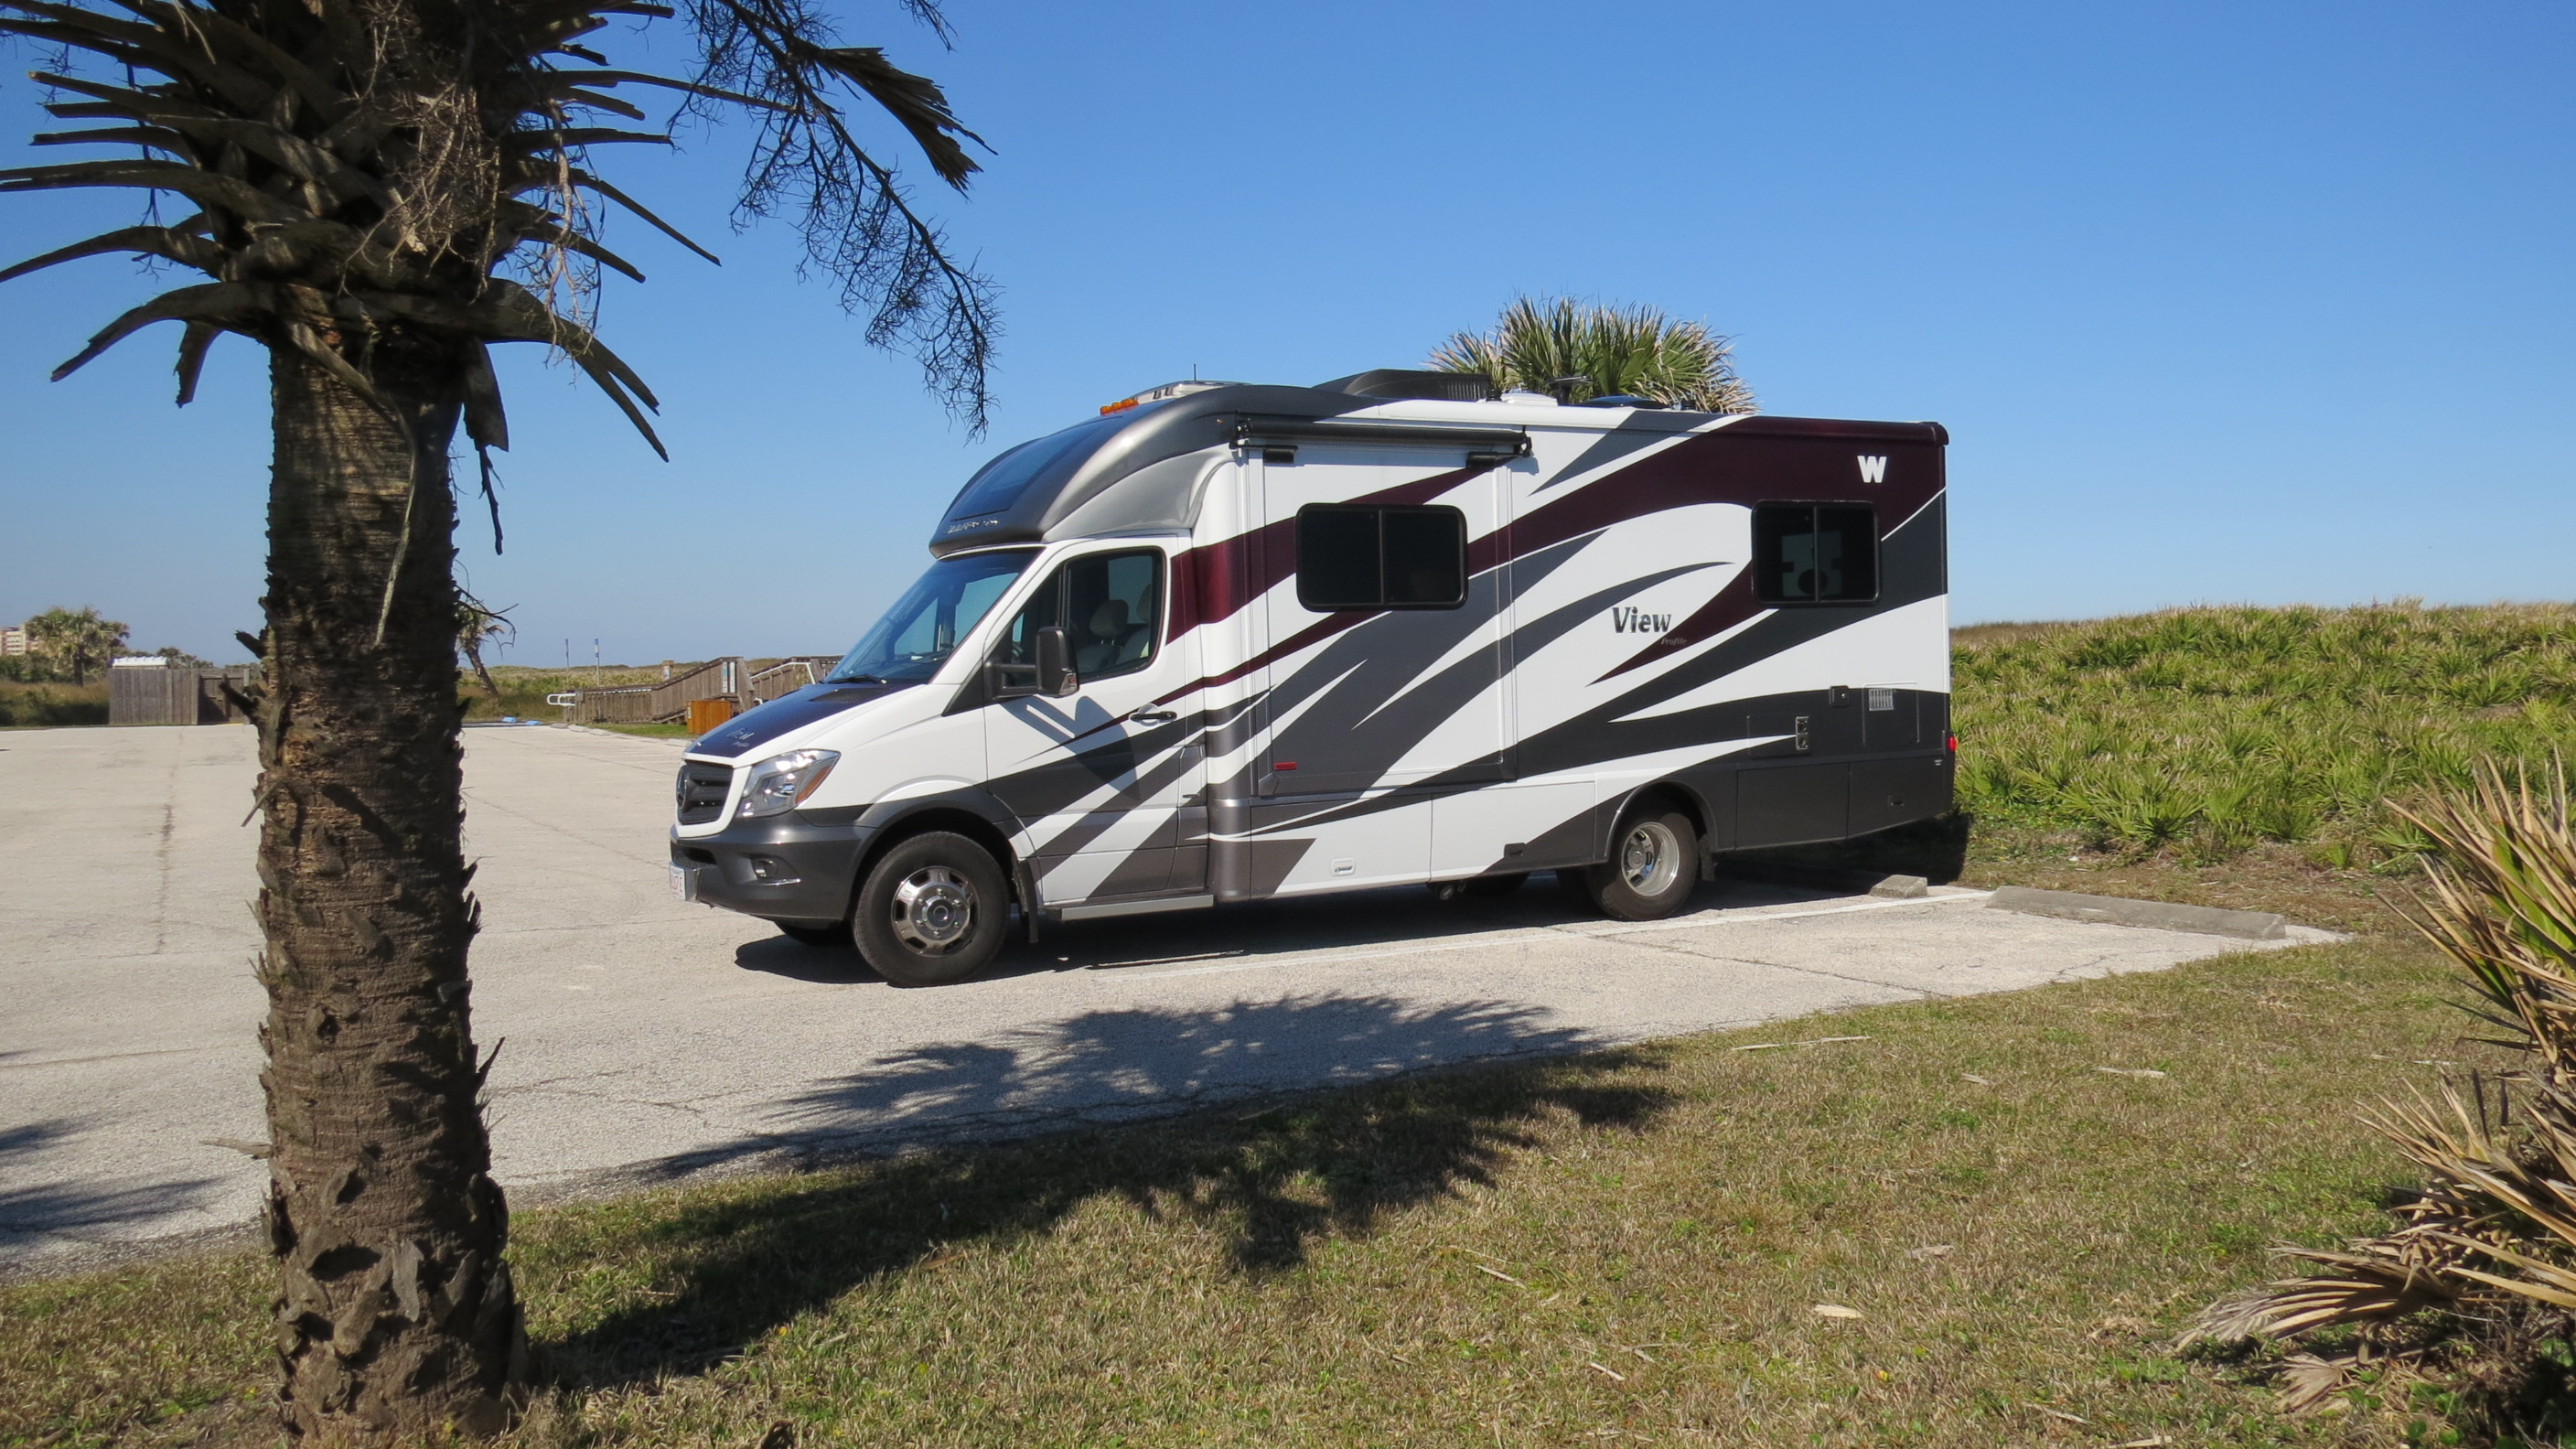 Small class c rv models quotes - I Ll Give The Specs Below But I Think It S Still Small Has The Floor Plan We Liked Built On A Very Reliable